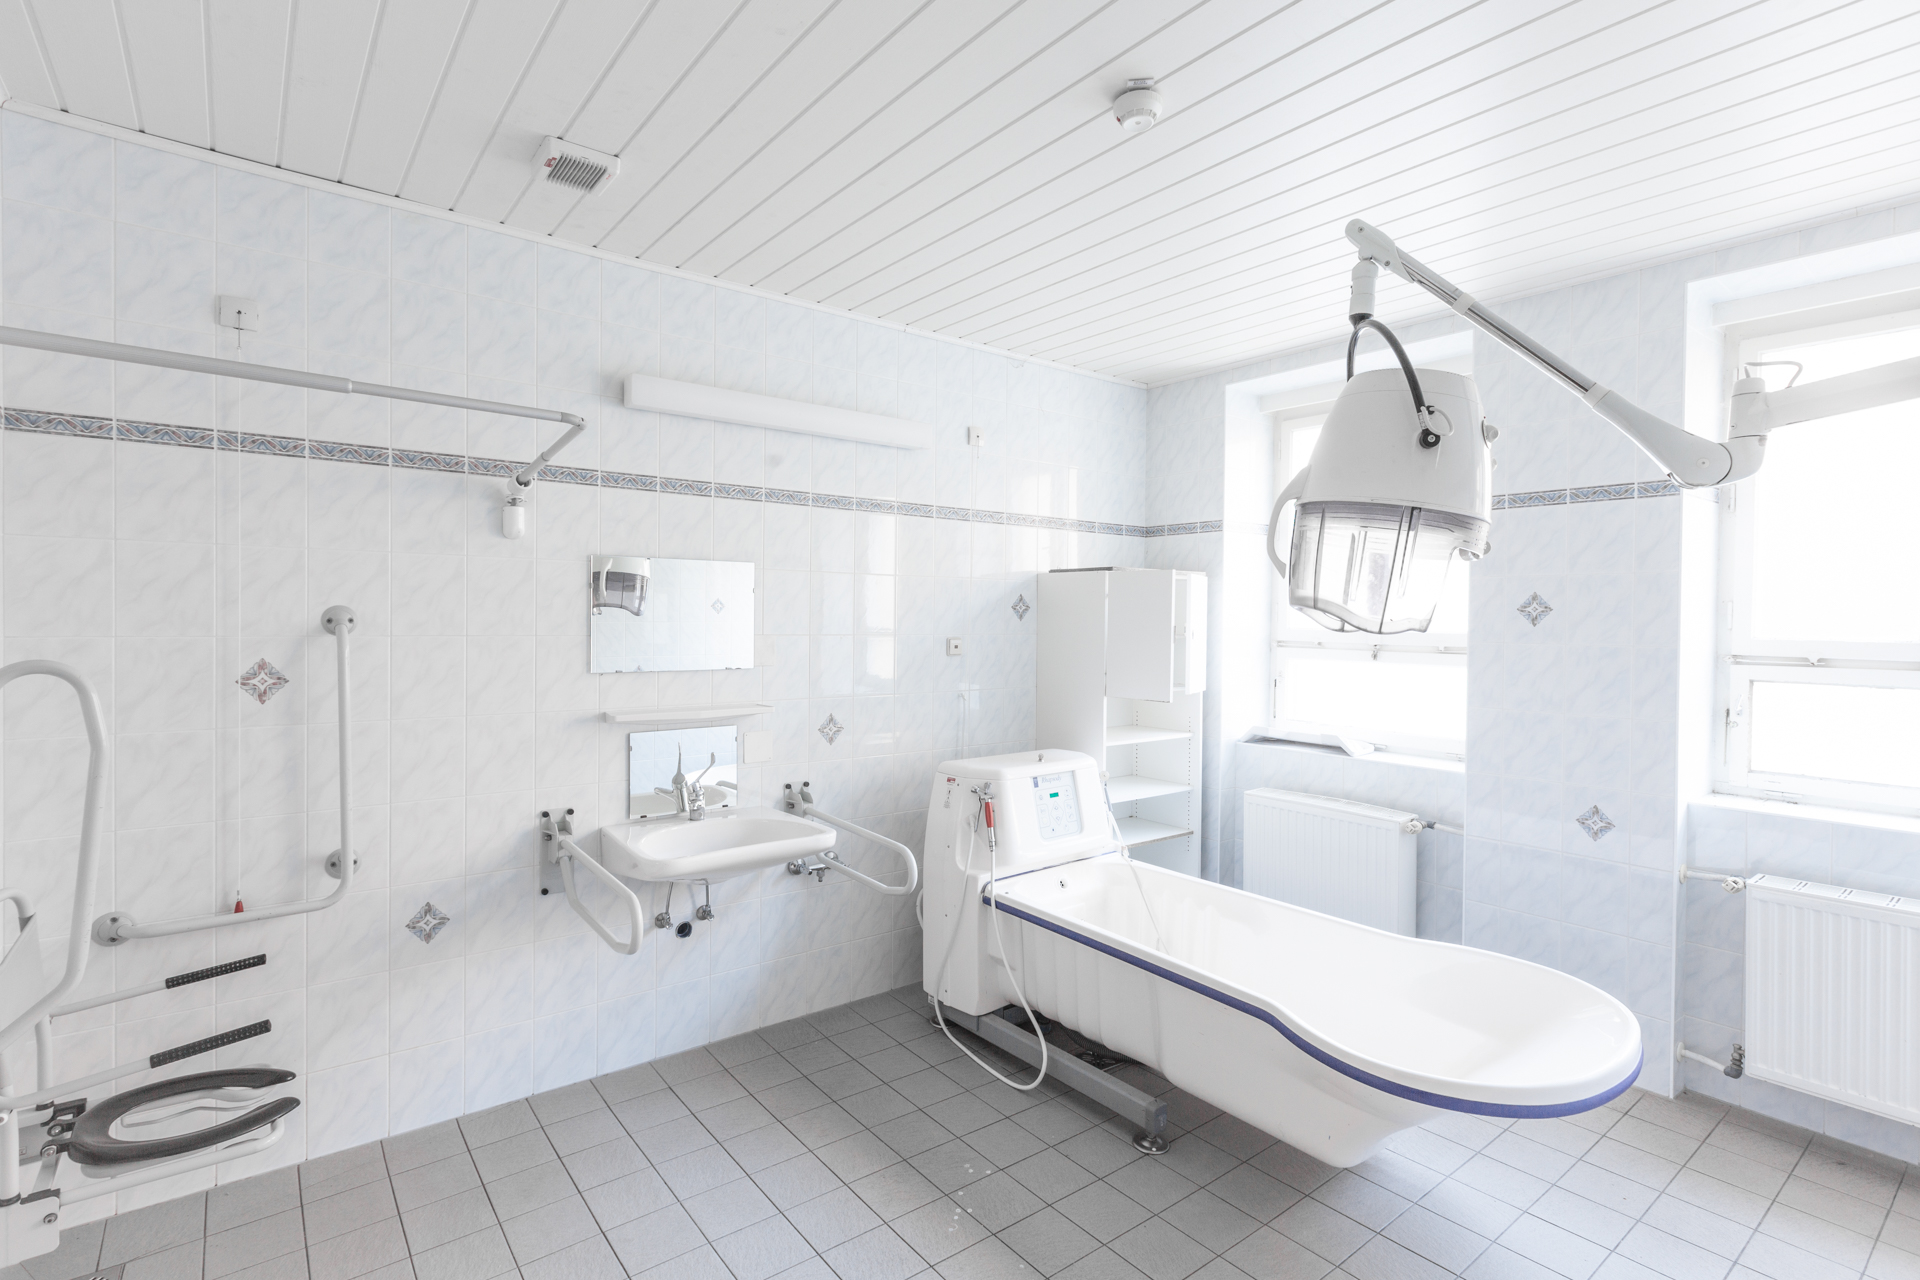 Urbex - Klinikum Panorama - Tub Room 02